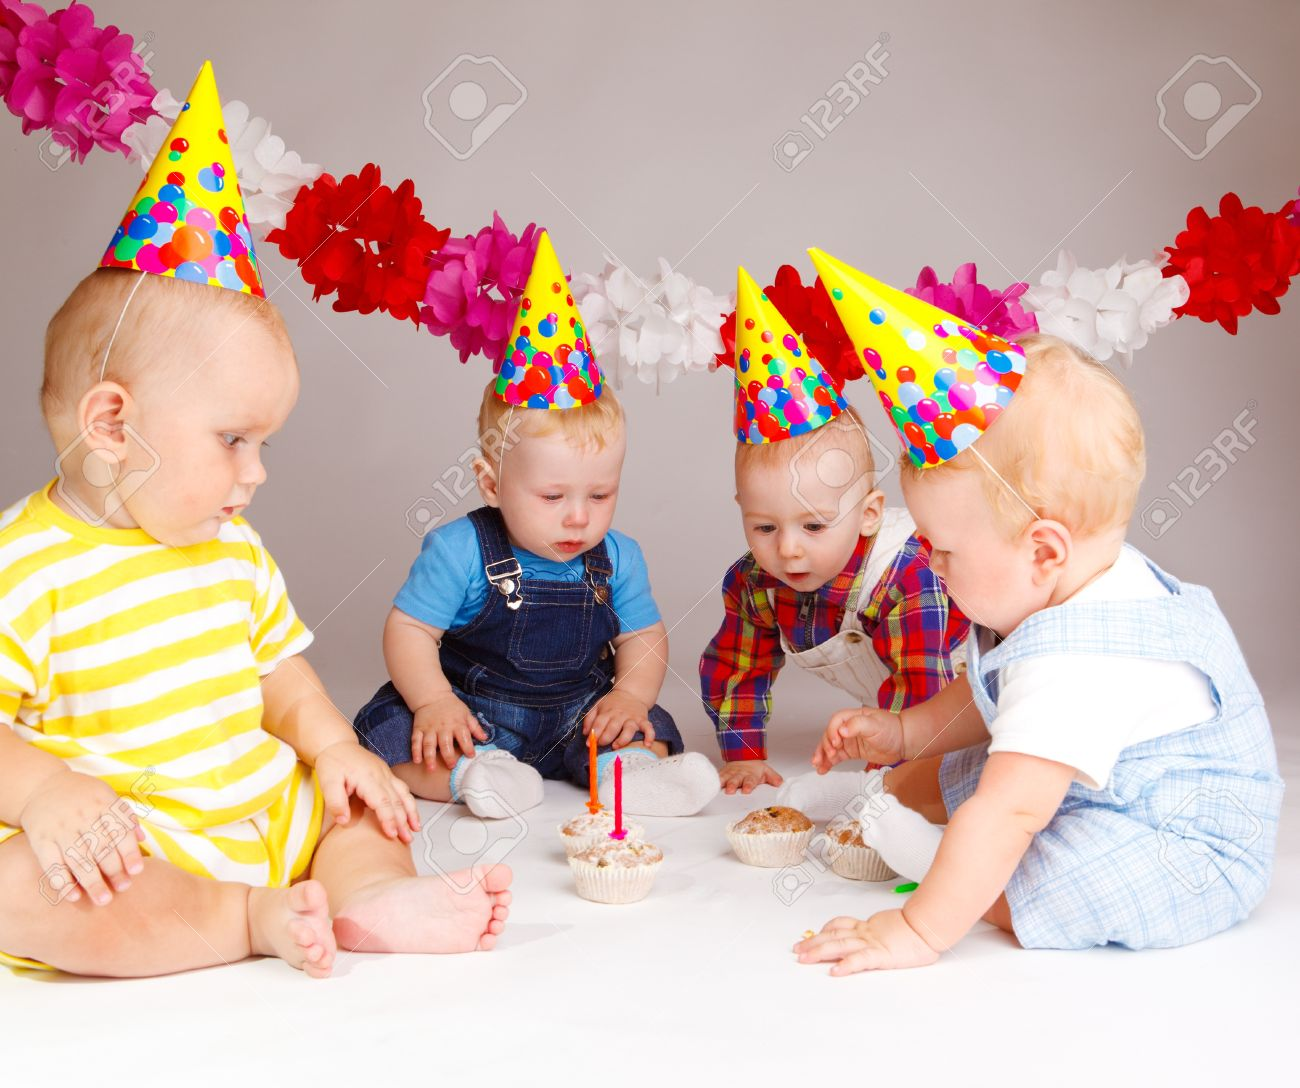 Group Of Babies Looking At Cupcakes With Birthday Candles Stock Photo